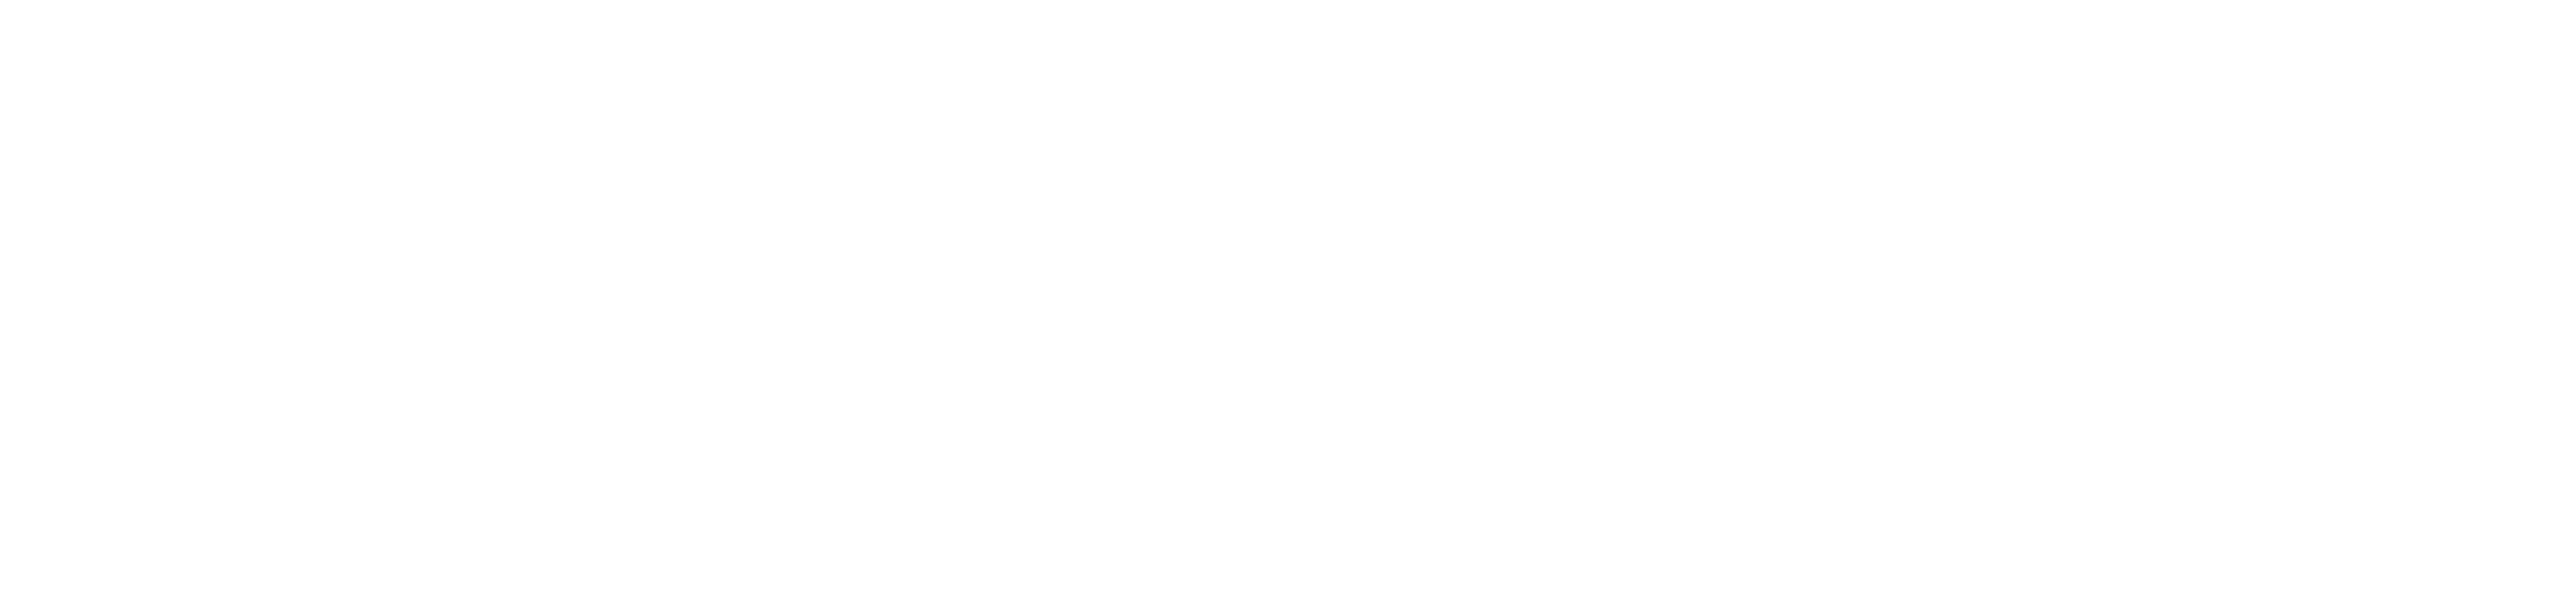 Berry & McGehee Law Firm